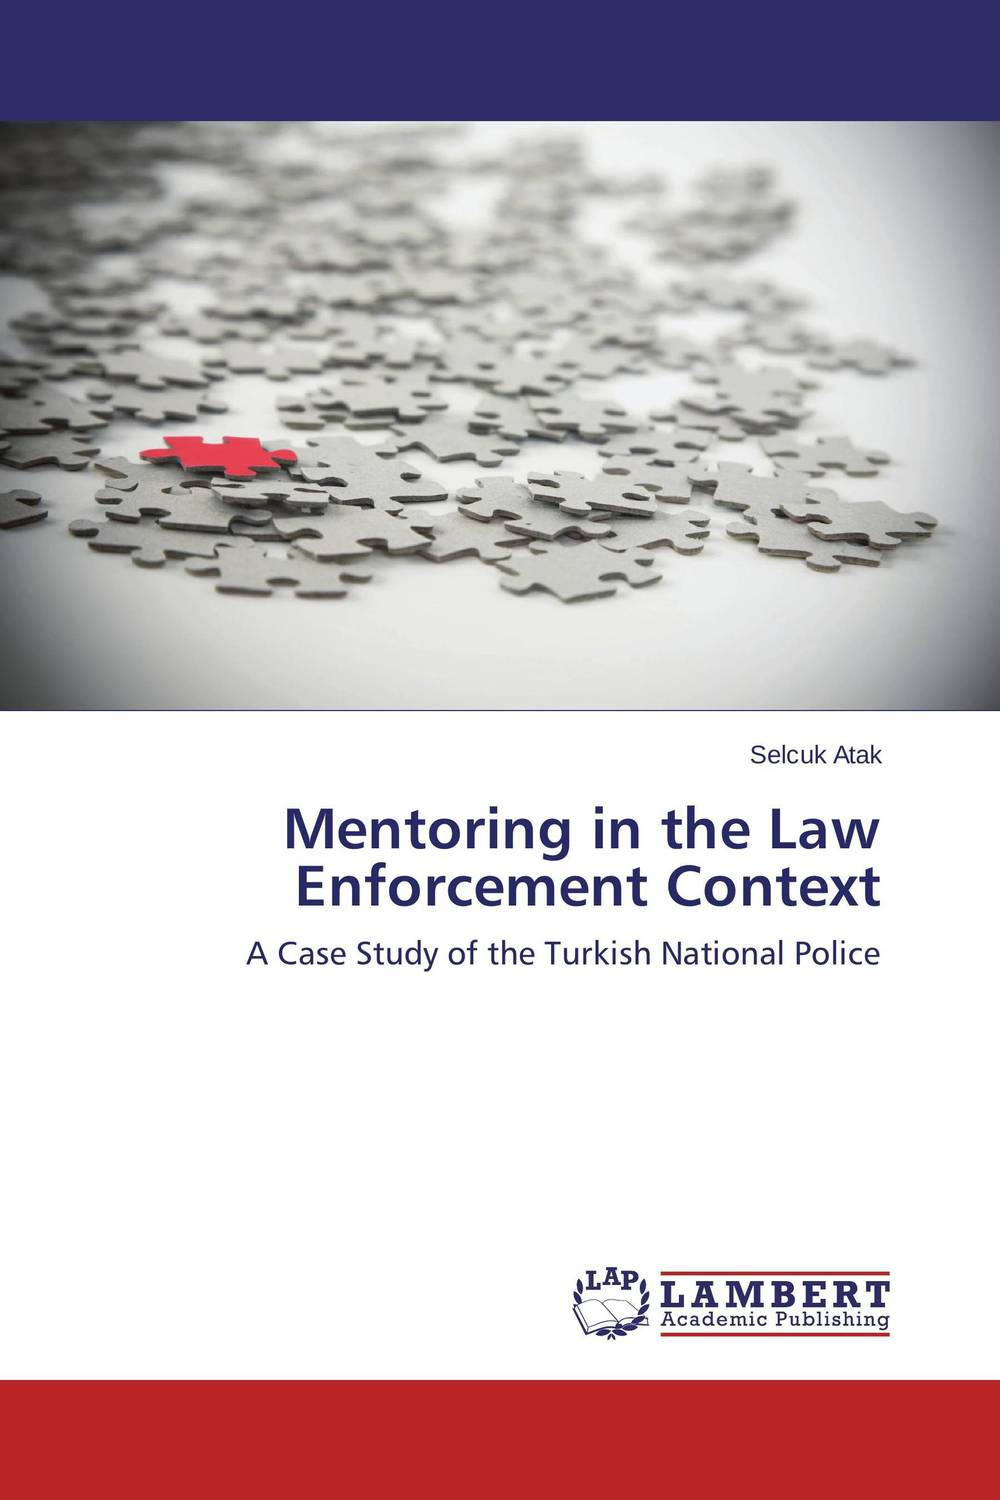 Mentoring in the Law Enforcement Context